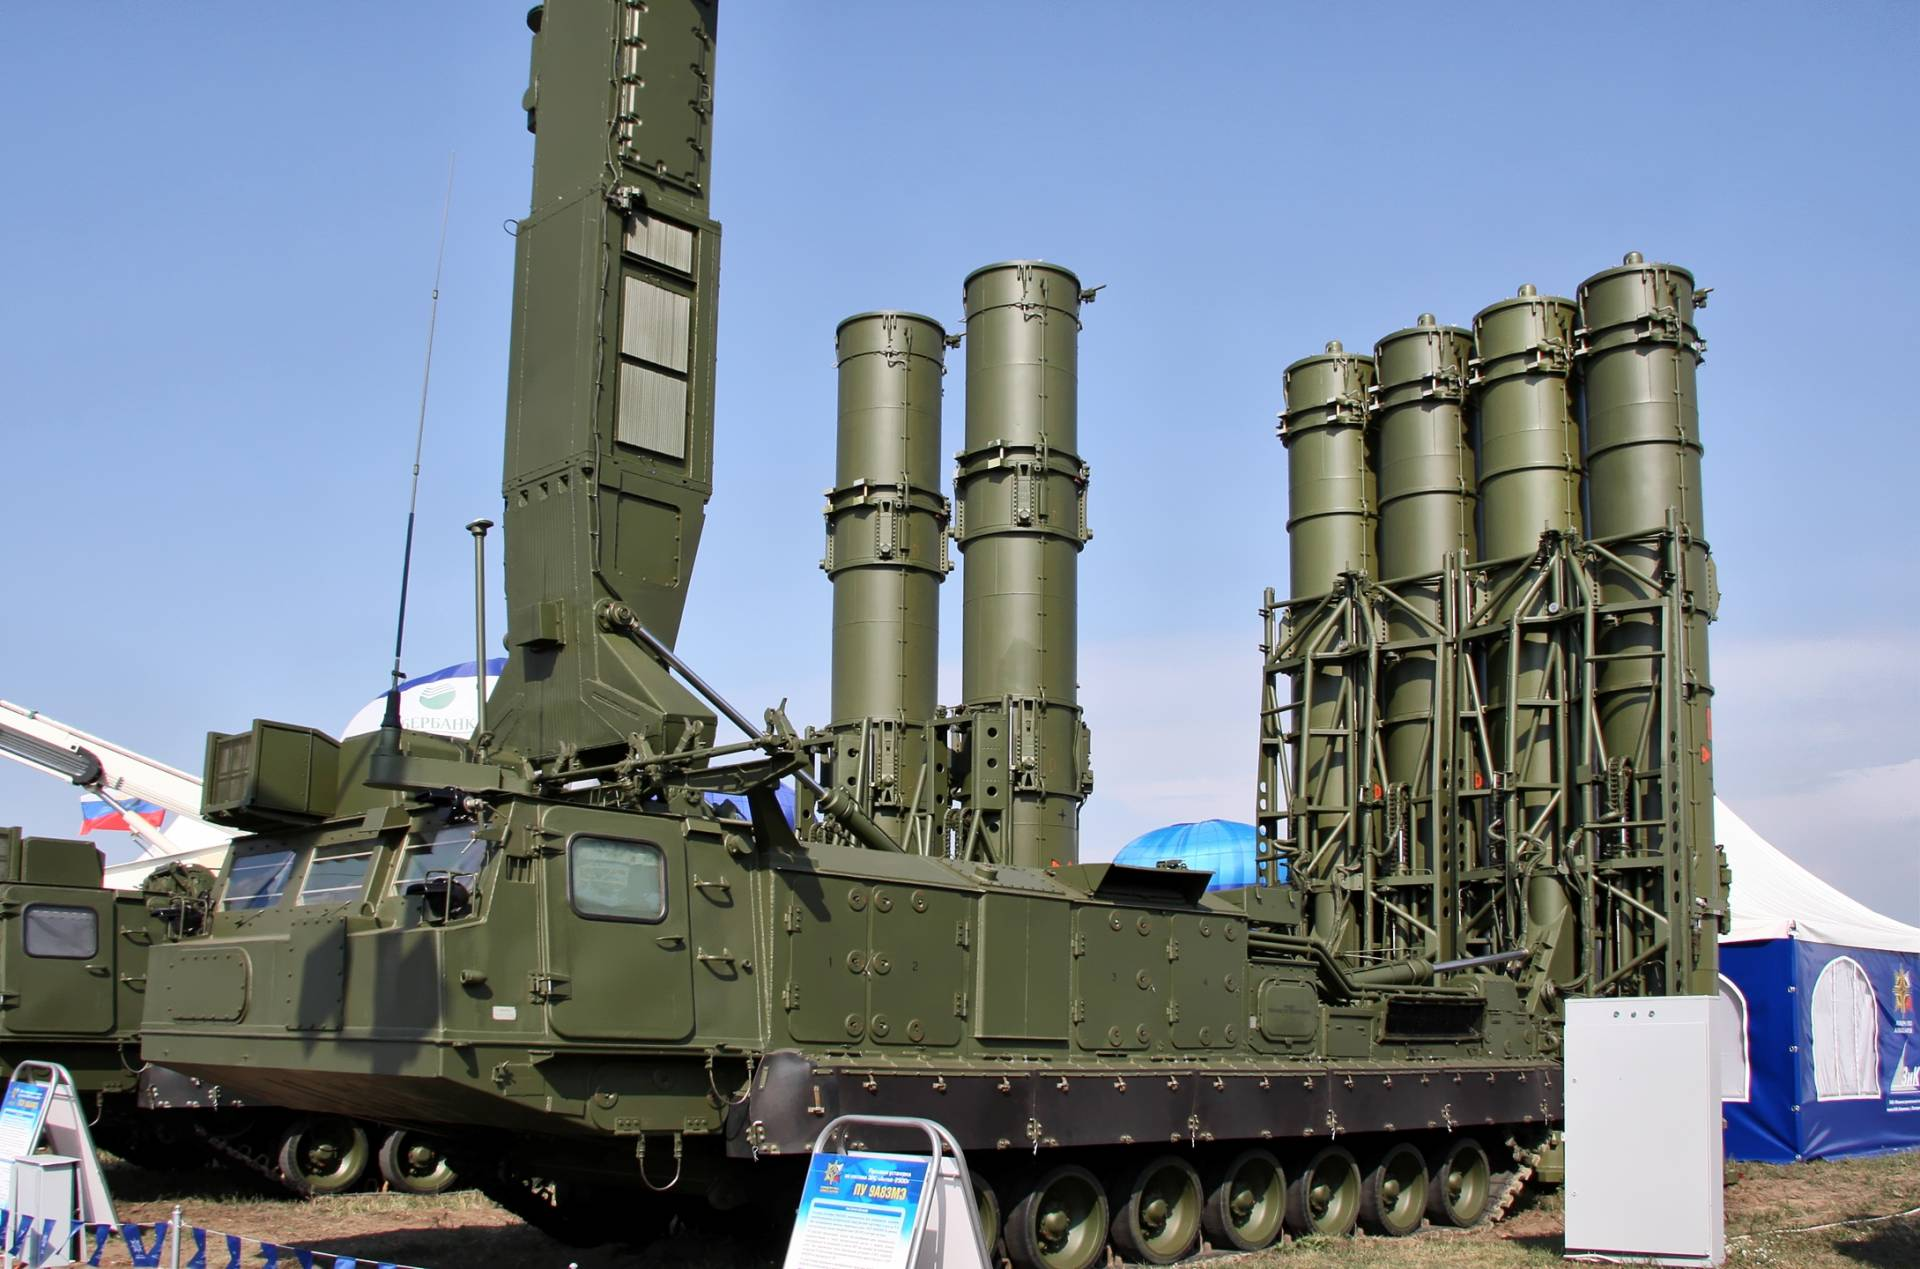 Russian S-300 anti-air defense system